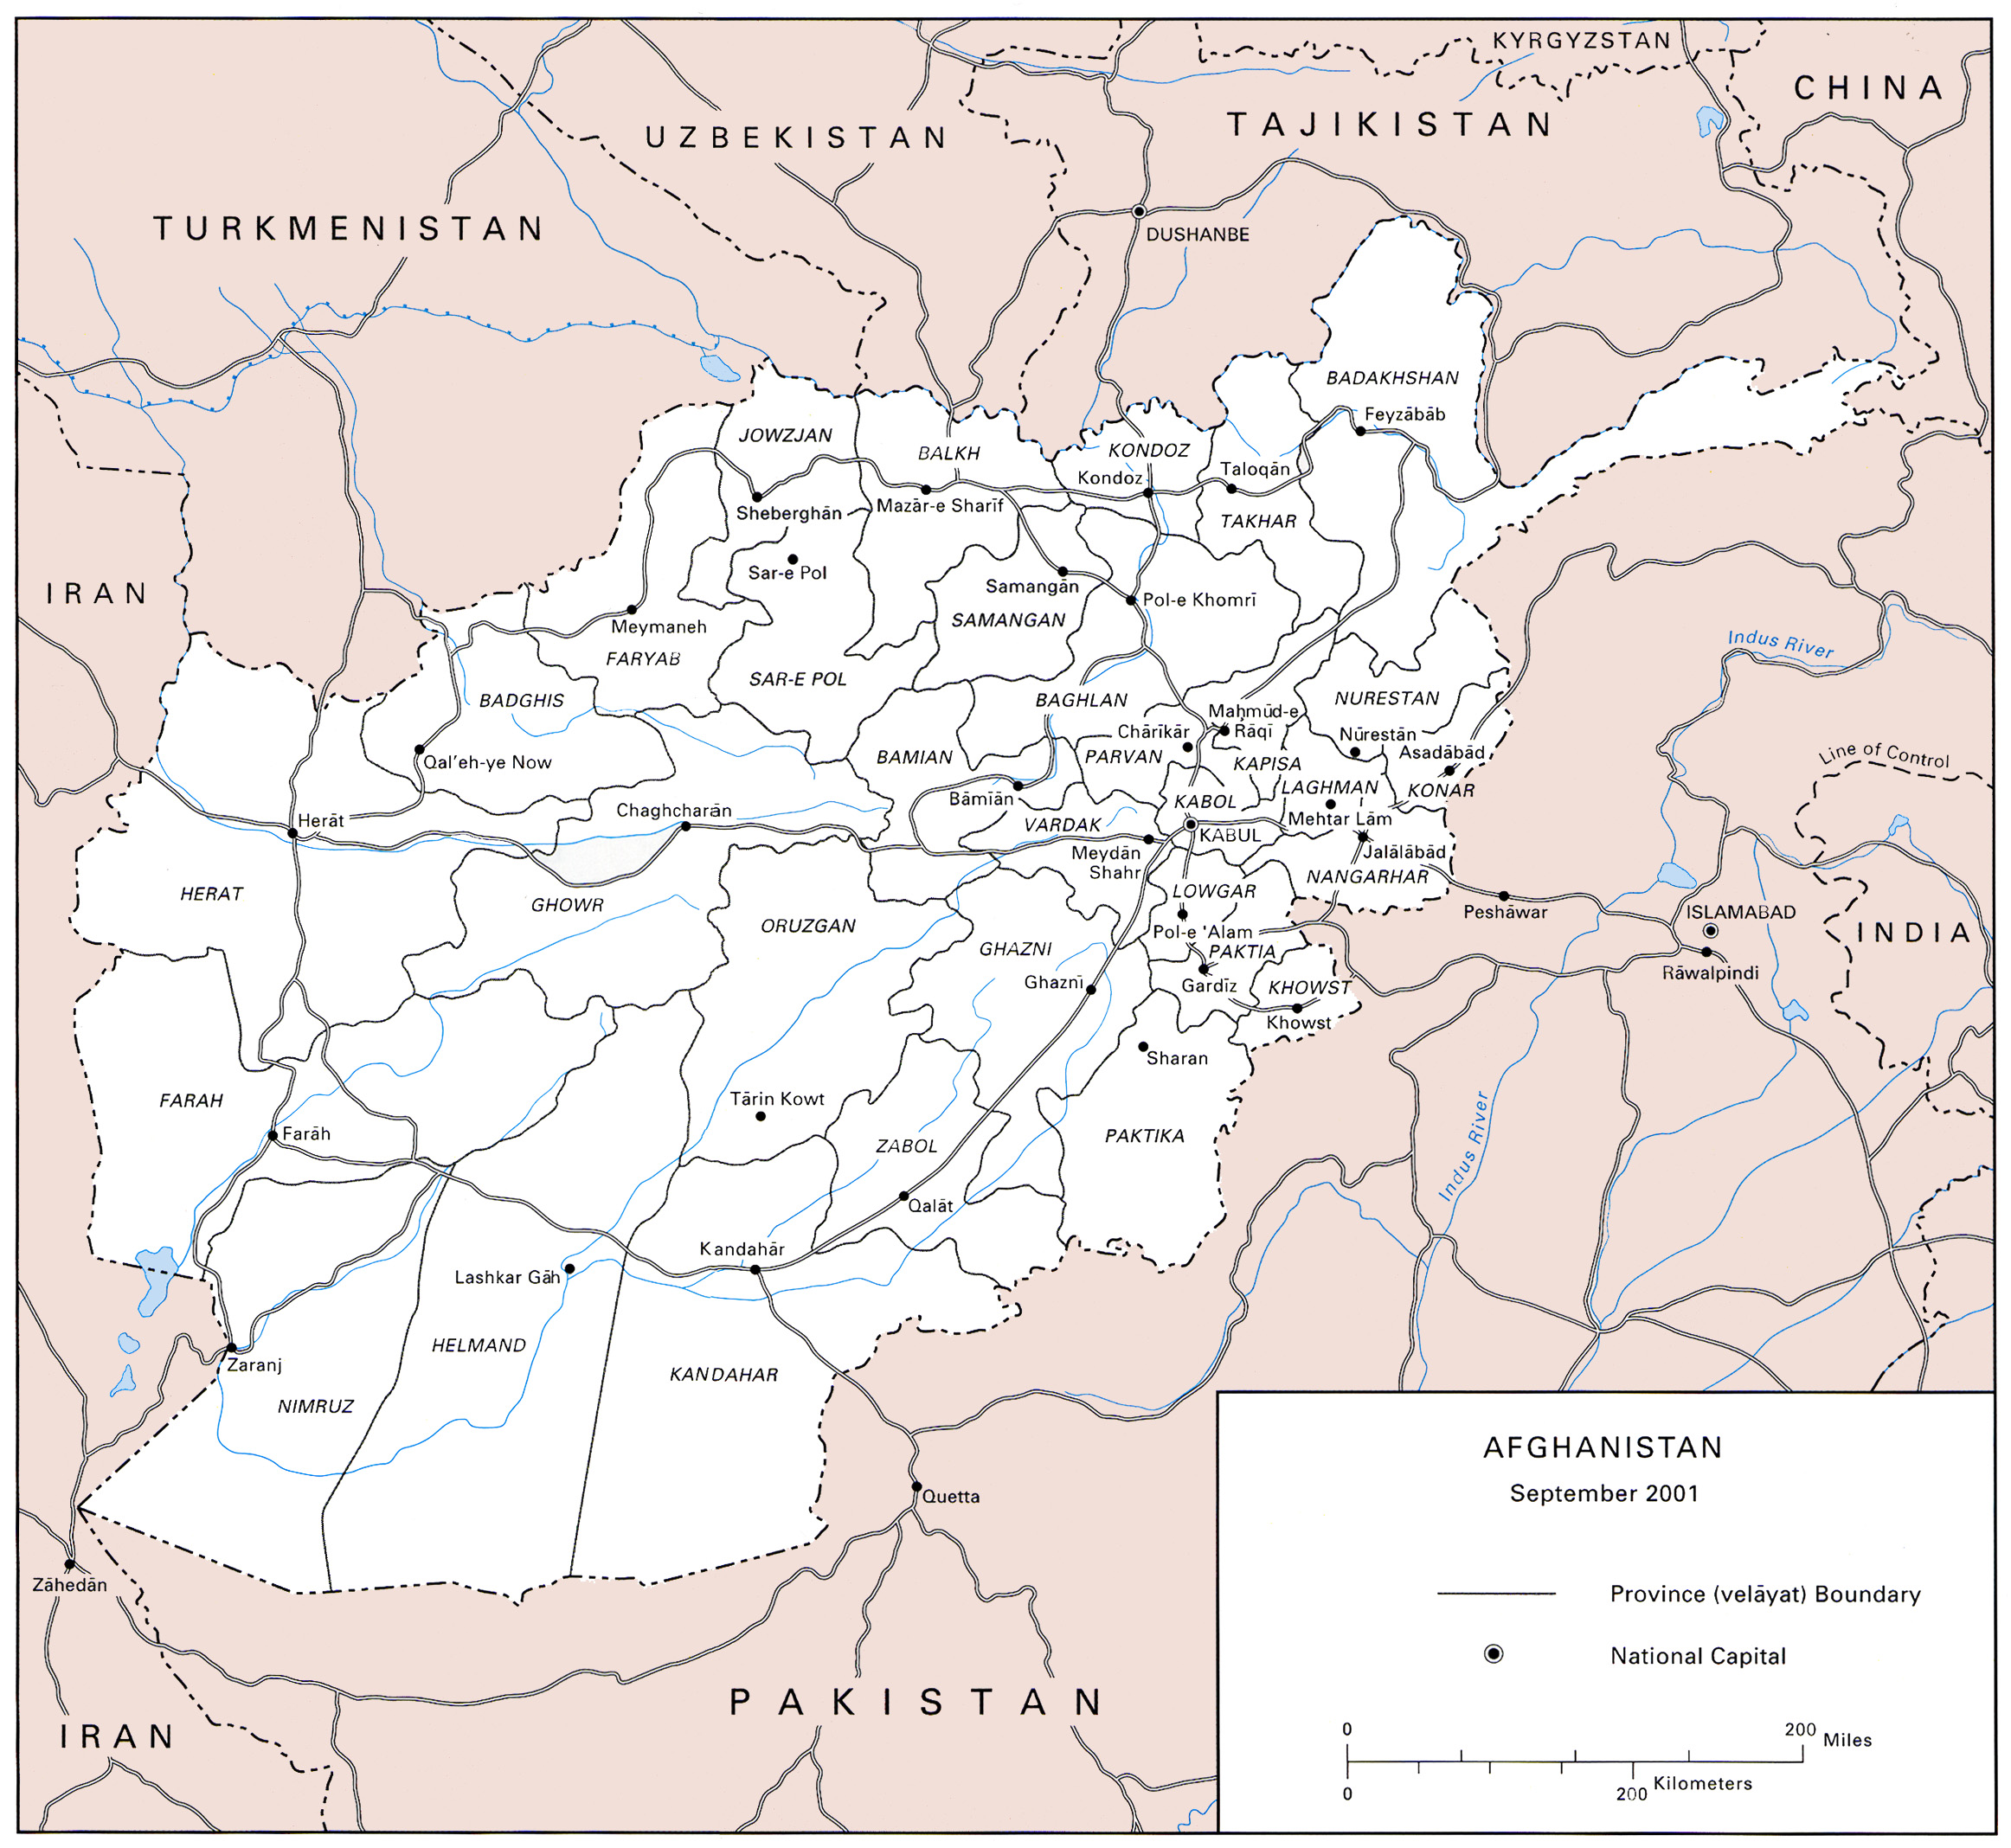 file us army map of afghanistan circa 2001 09 jpg